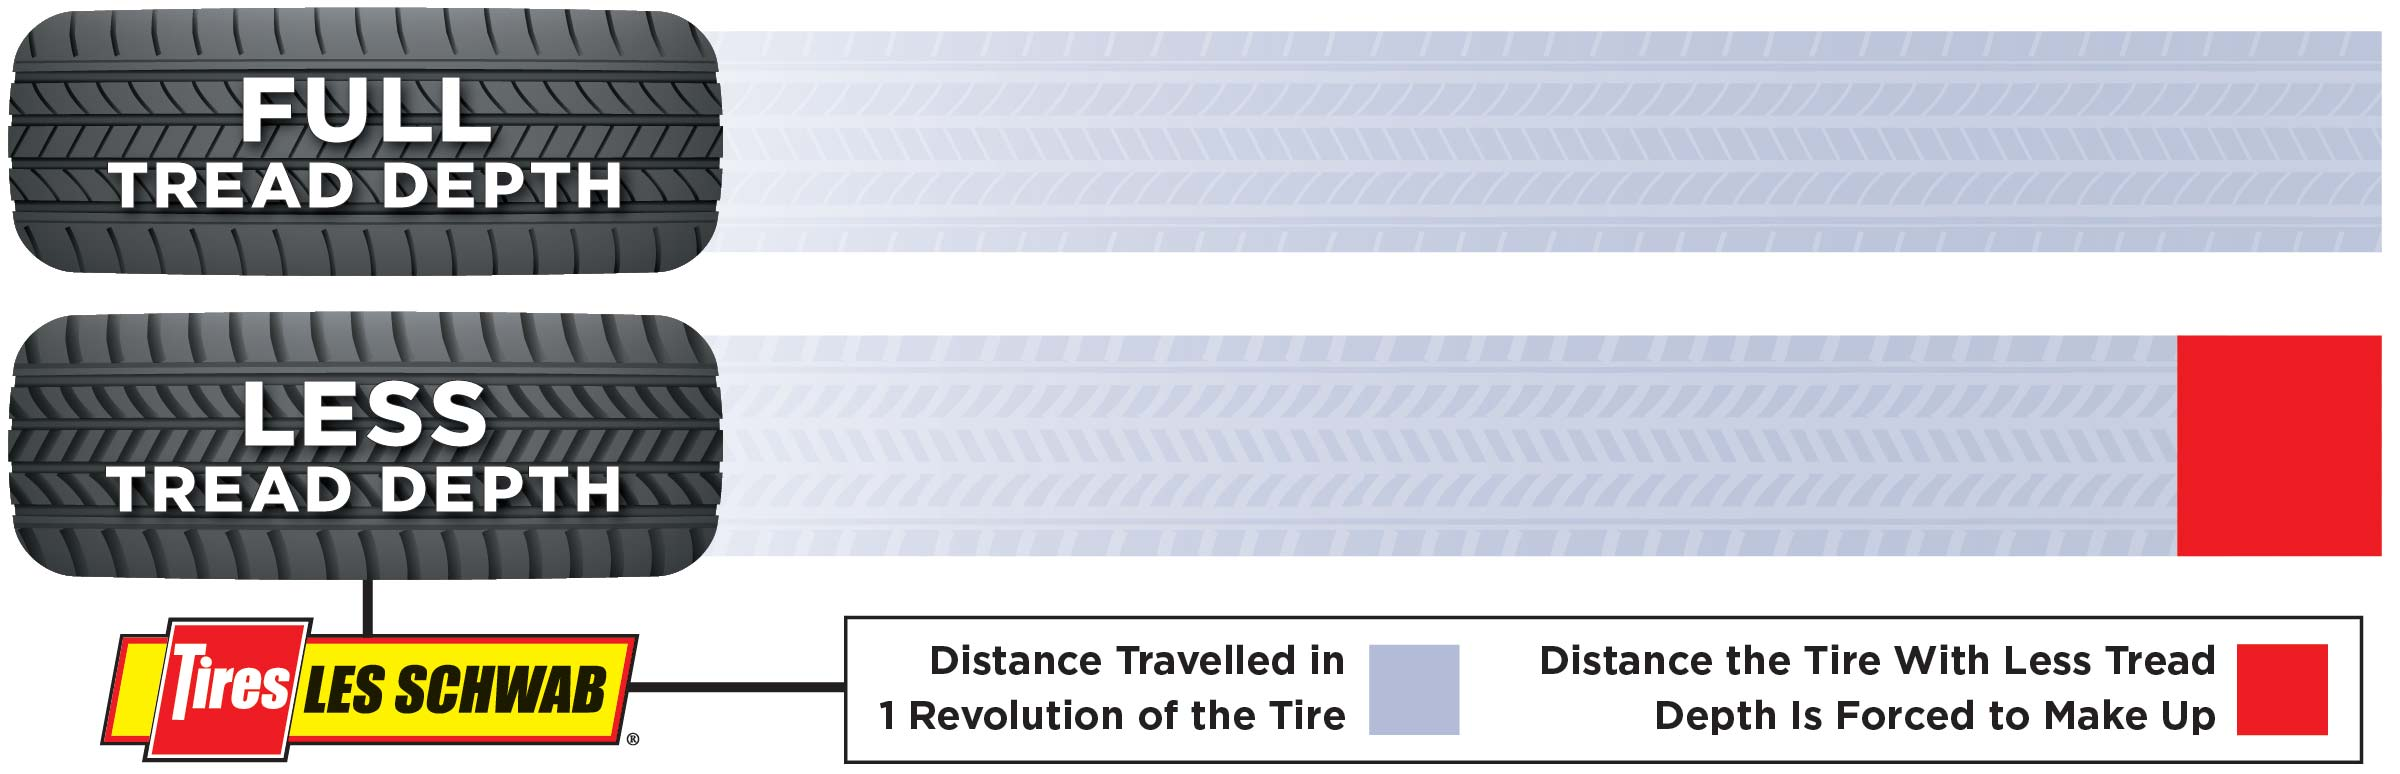 Difference in distance traveled between two tire sizes